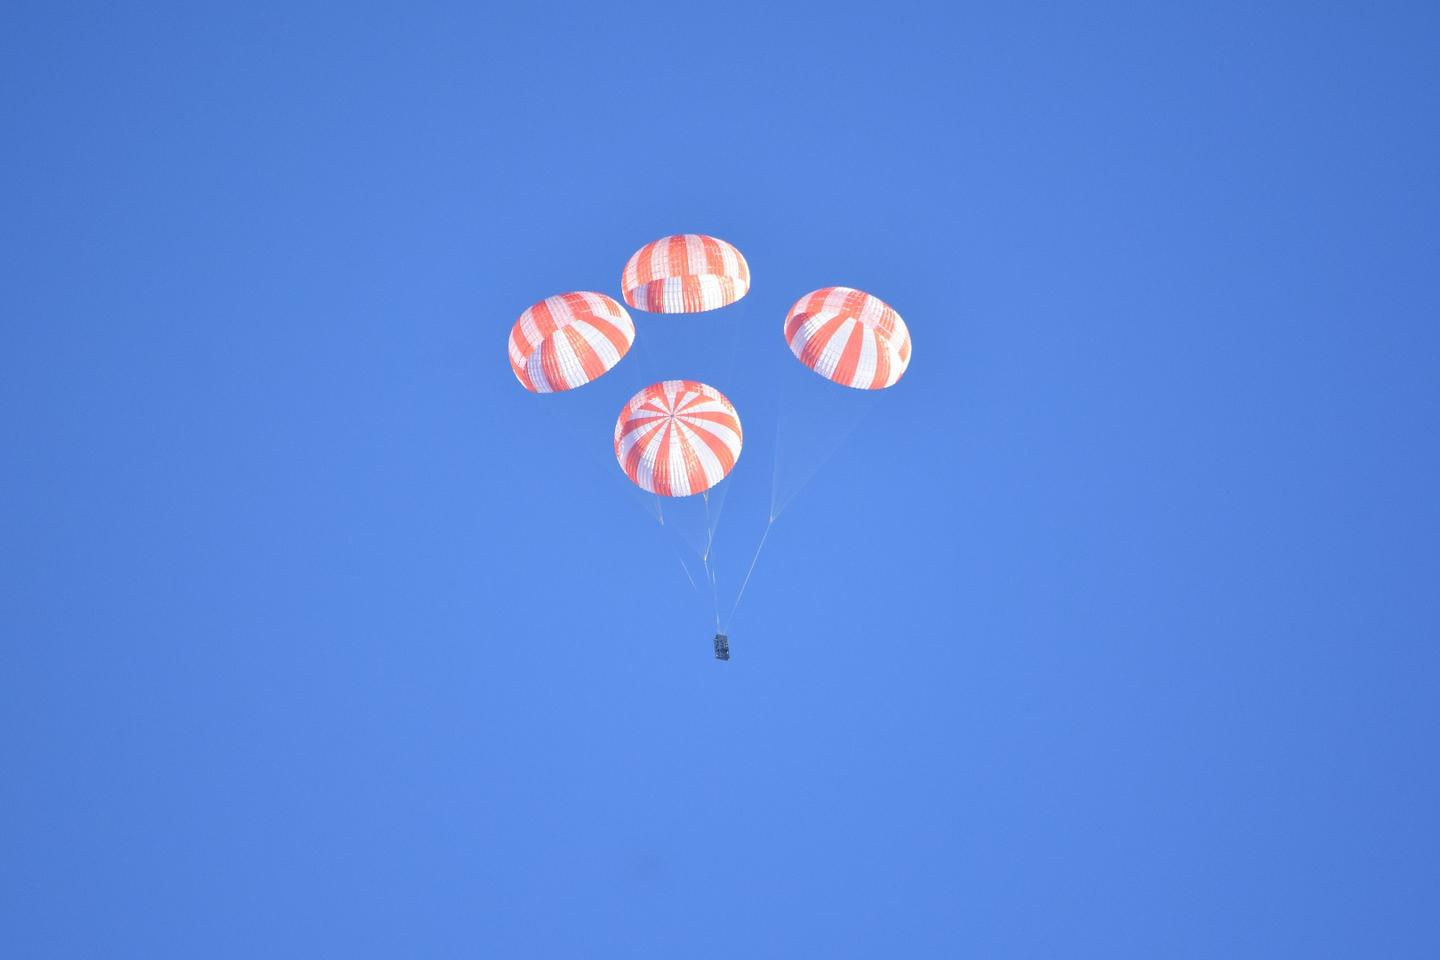 SpaceX's mass simulator descending under four deployed main stage parachutes